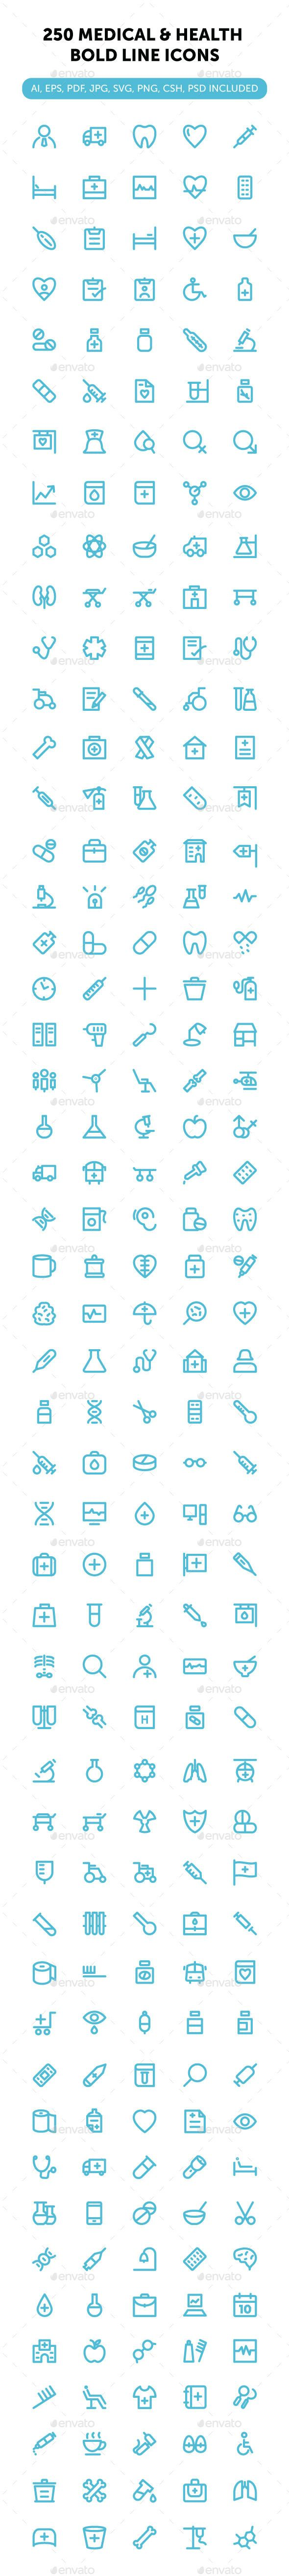 250 Medical and Health Bold Line Icons #design Download: http://graphicriver.net/item/250-medical-and-health-bold-line-icons/12580616?ref=ksioks